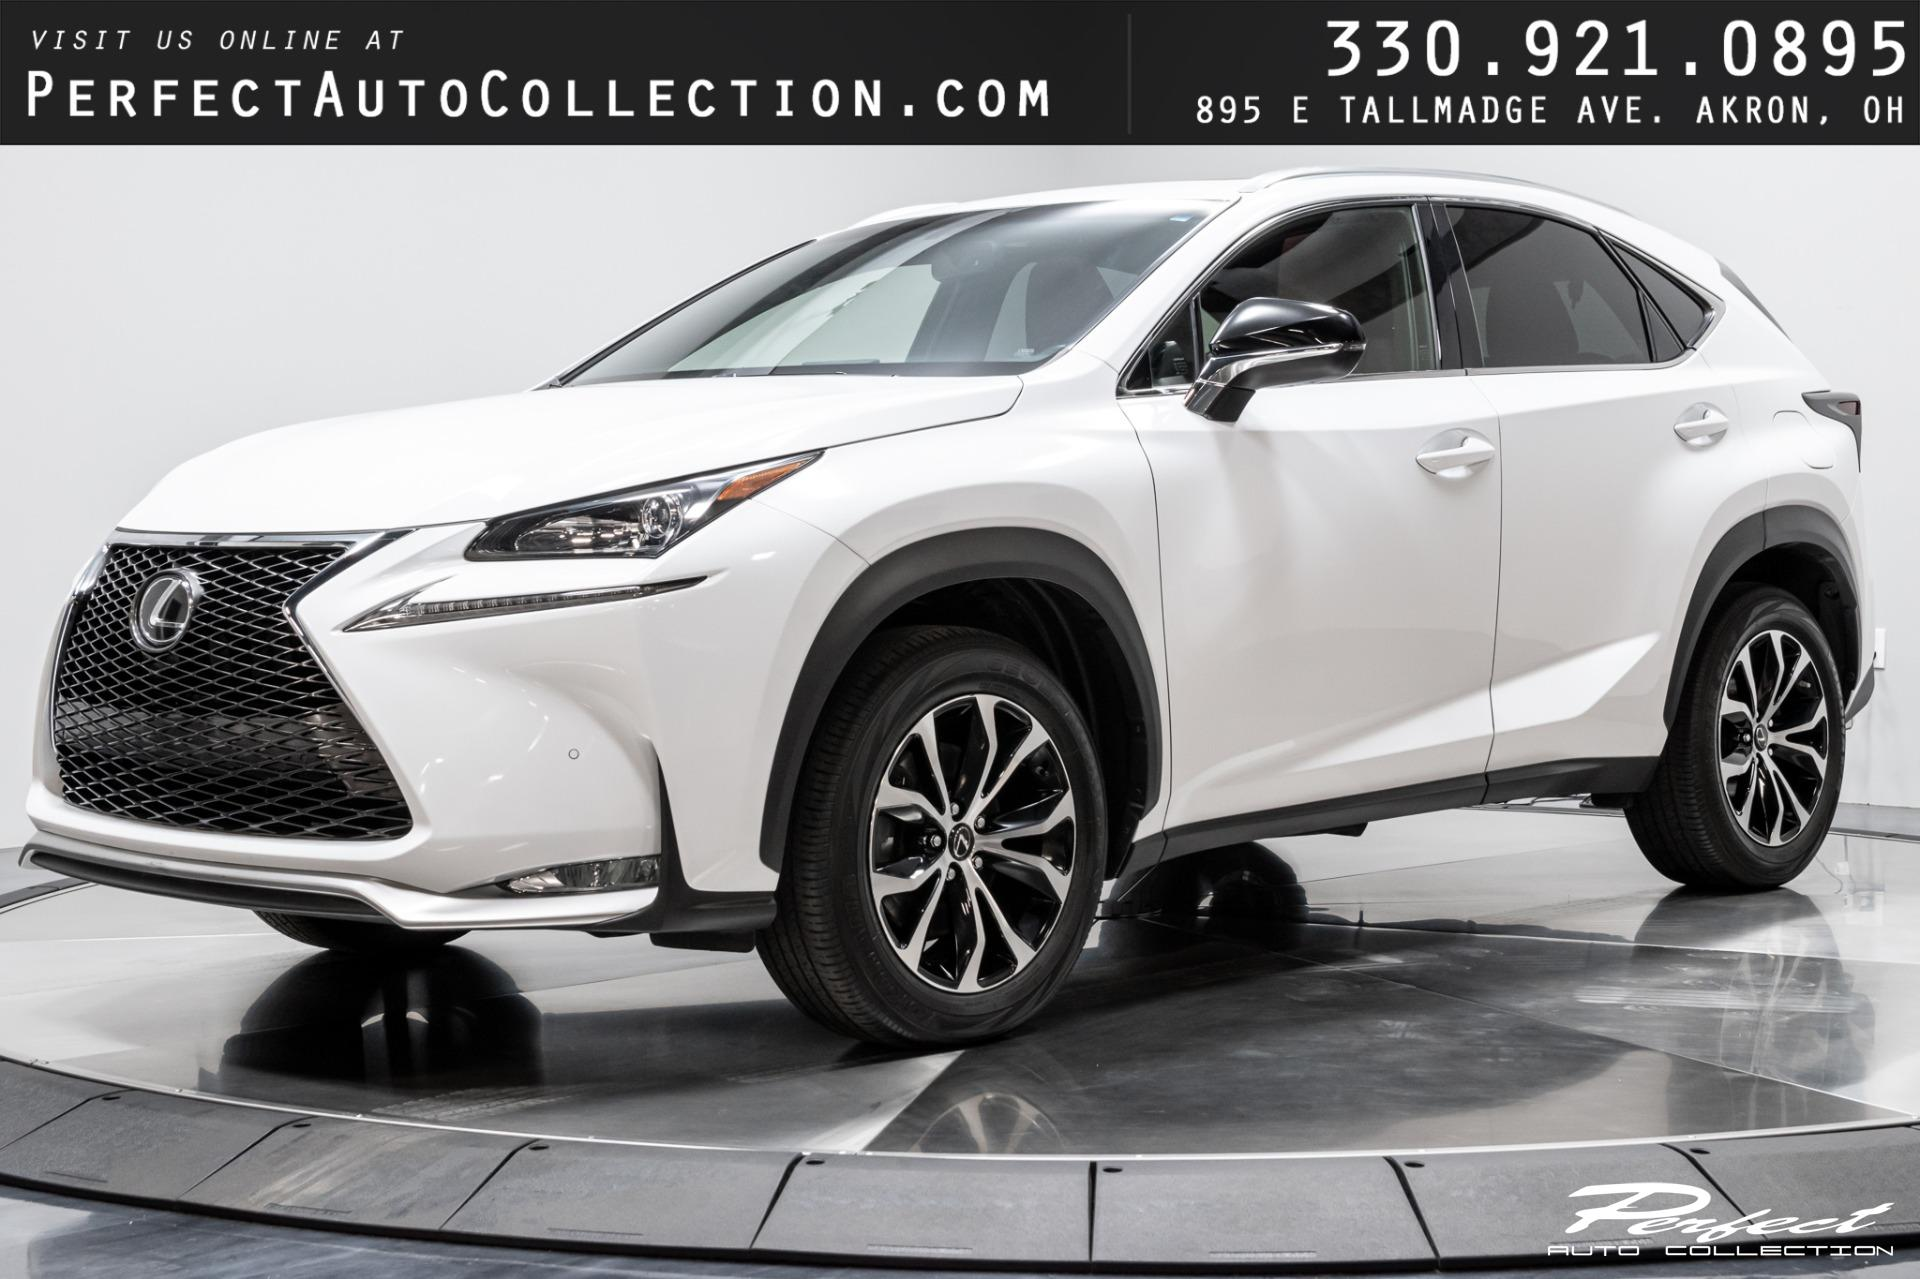 Used 2016 Lexus NX 200t F SPORT for sale $29,893 at Perfect Auto Collection in Akron OH 44310 1